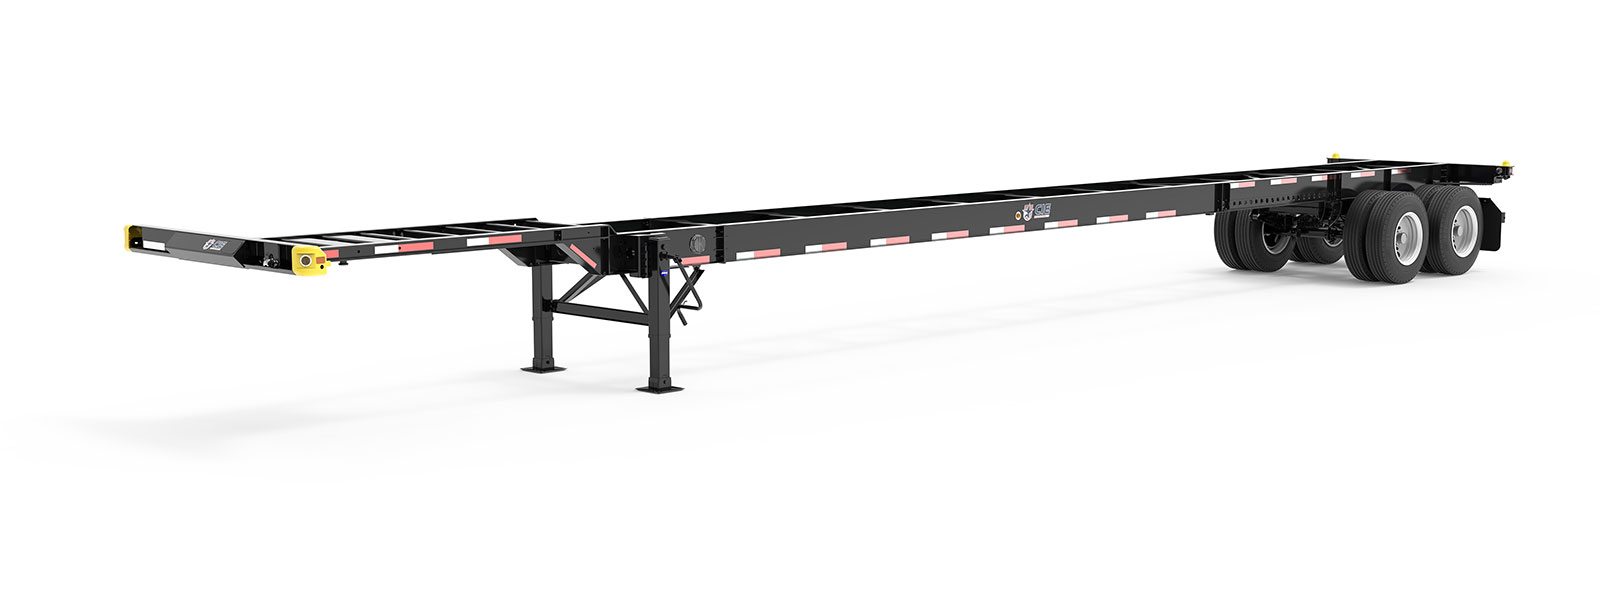 53' Gooseneck Tandem Container Chassis Literature Angle View Final